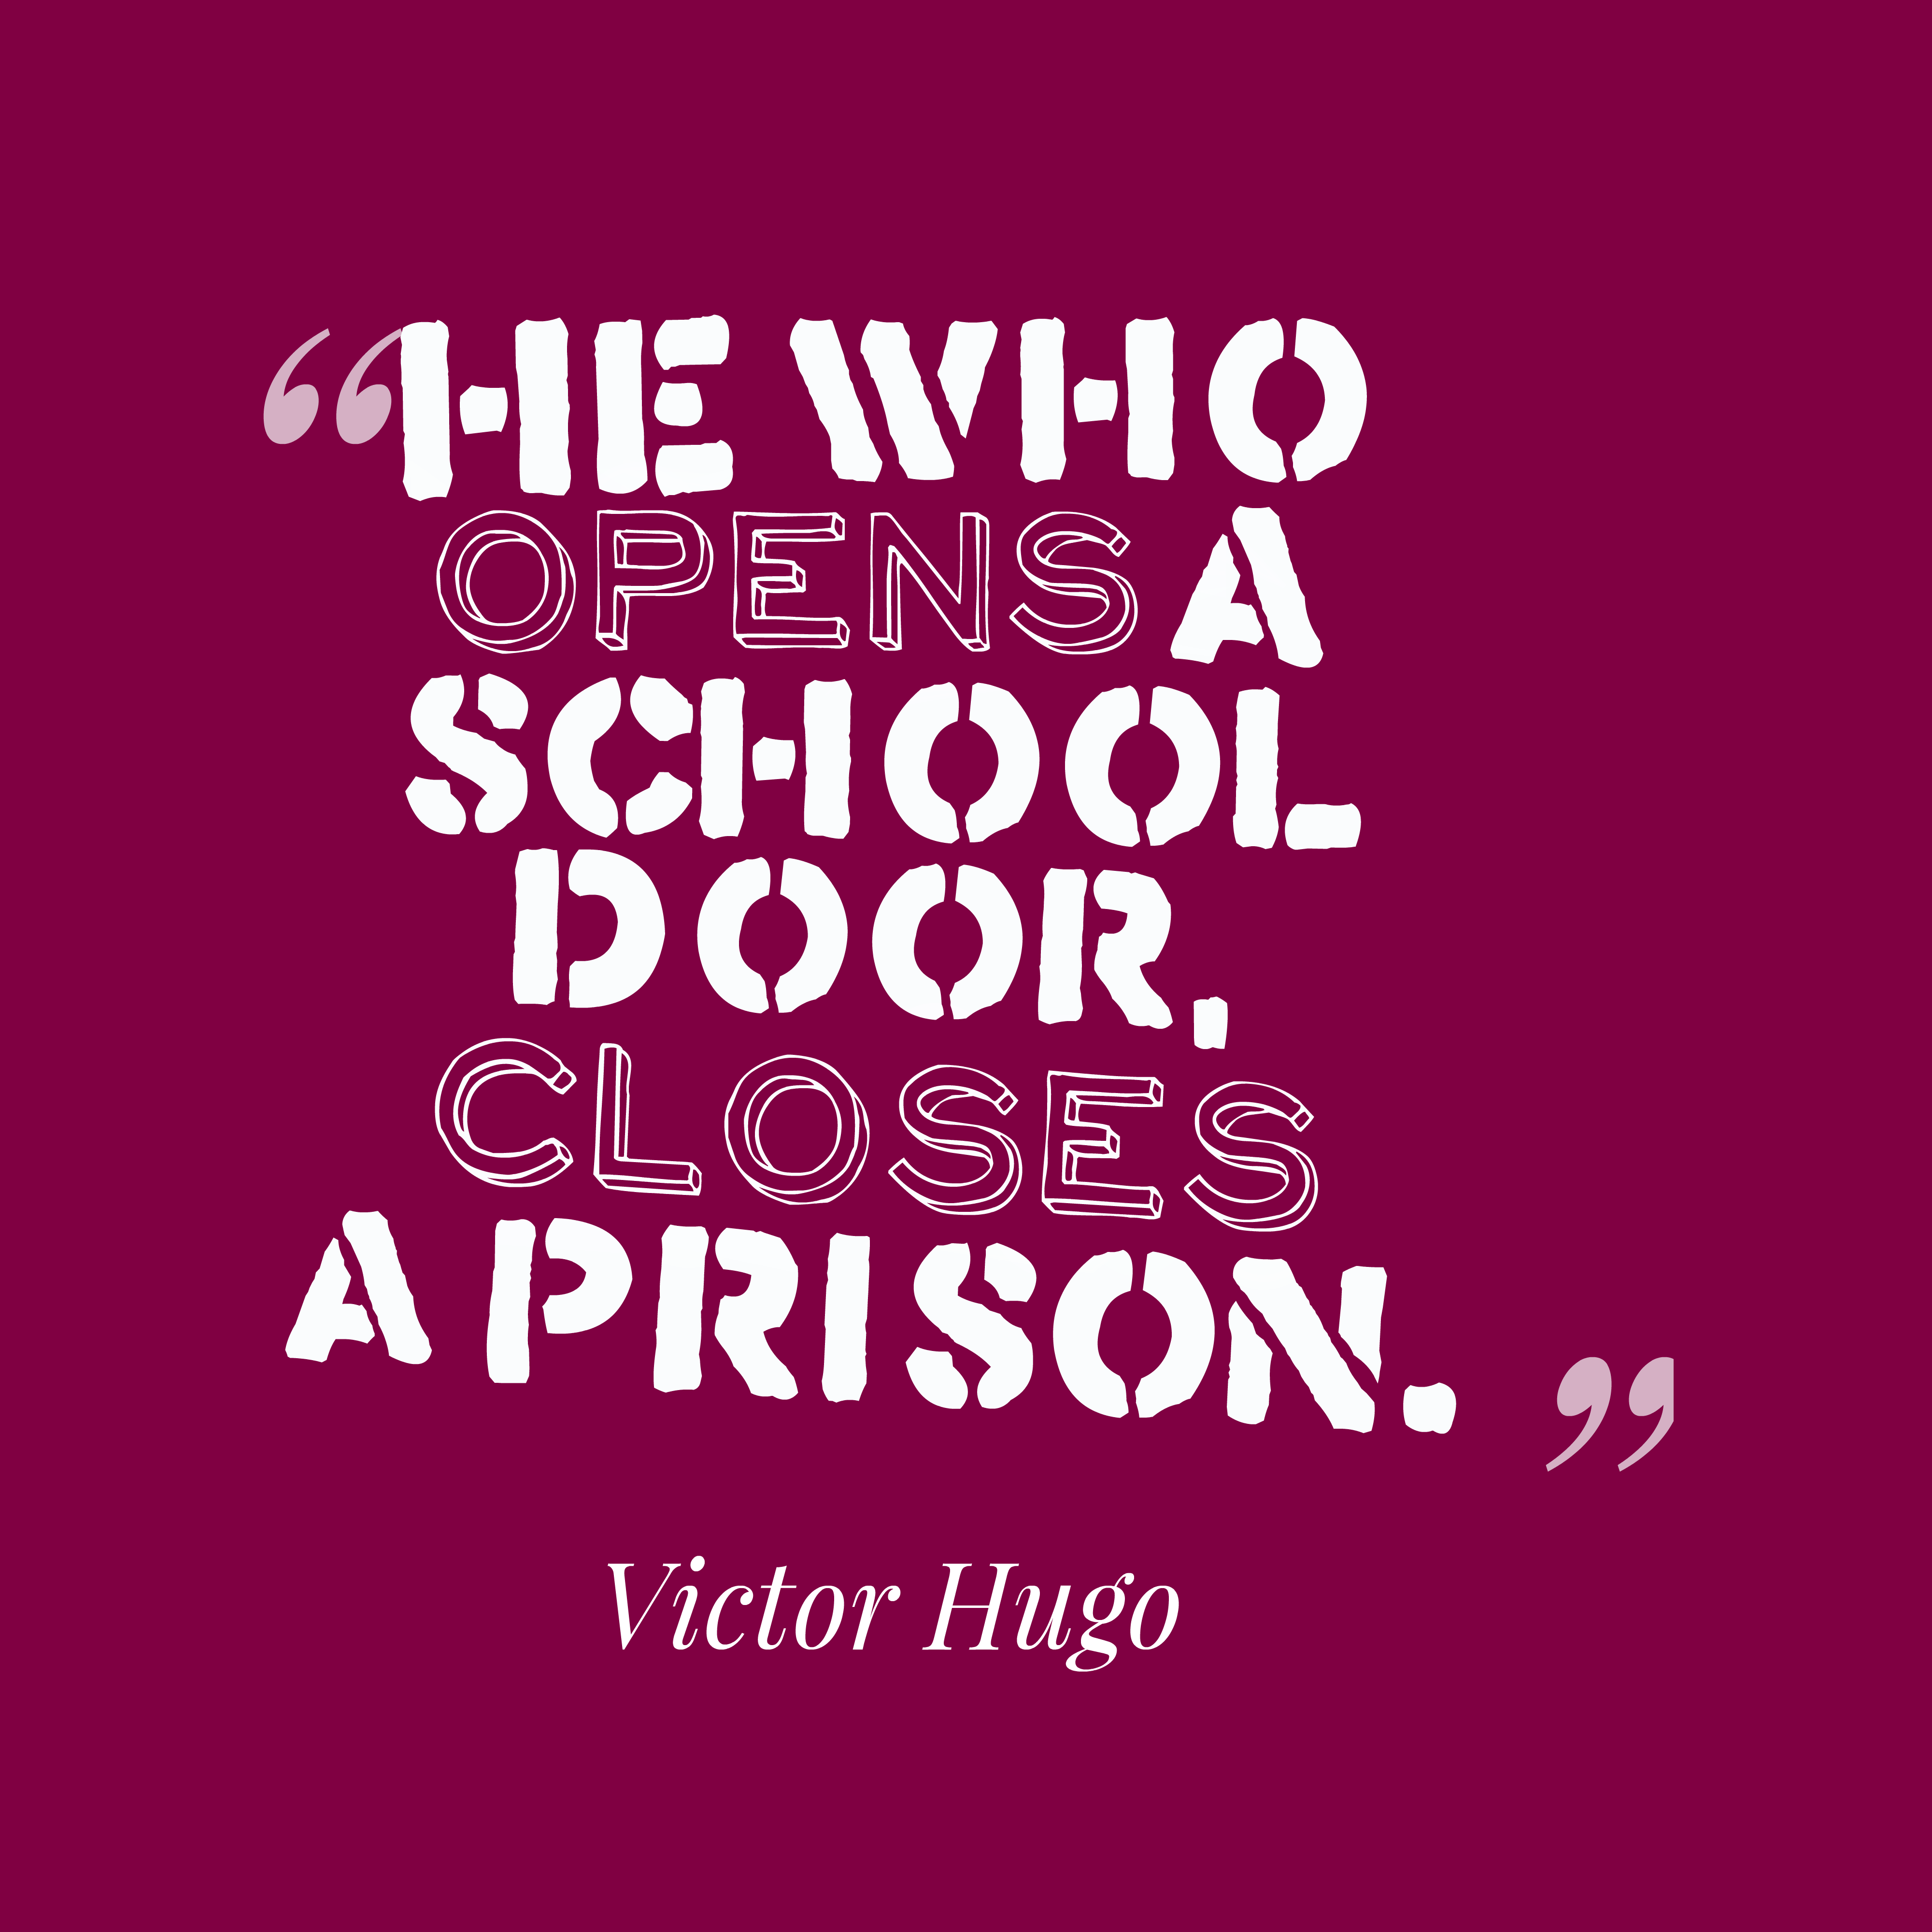 Famous Quotes About Technology In Education: Victor Hugo Quote About Education